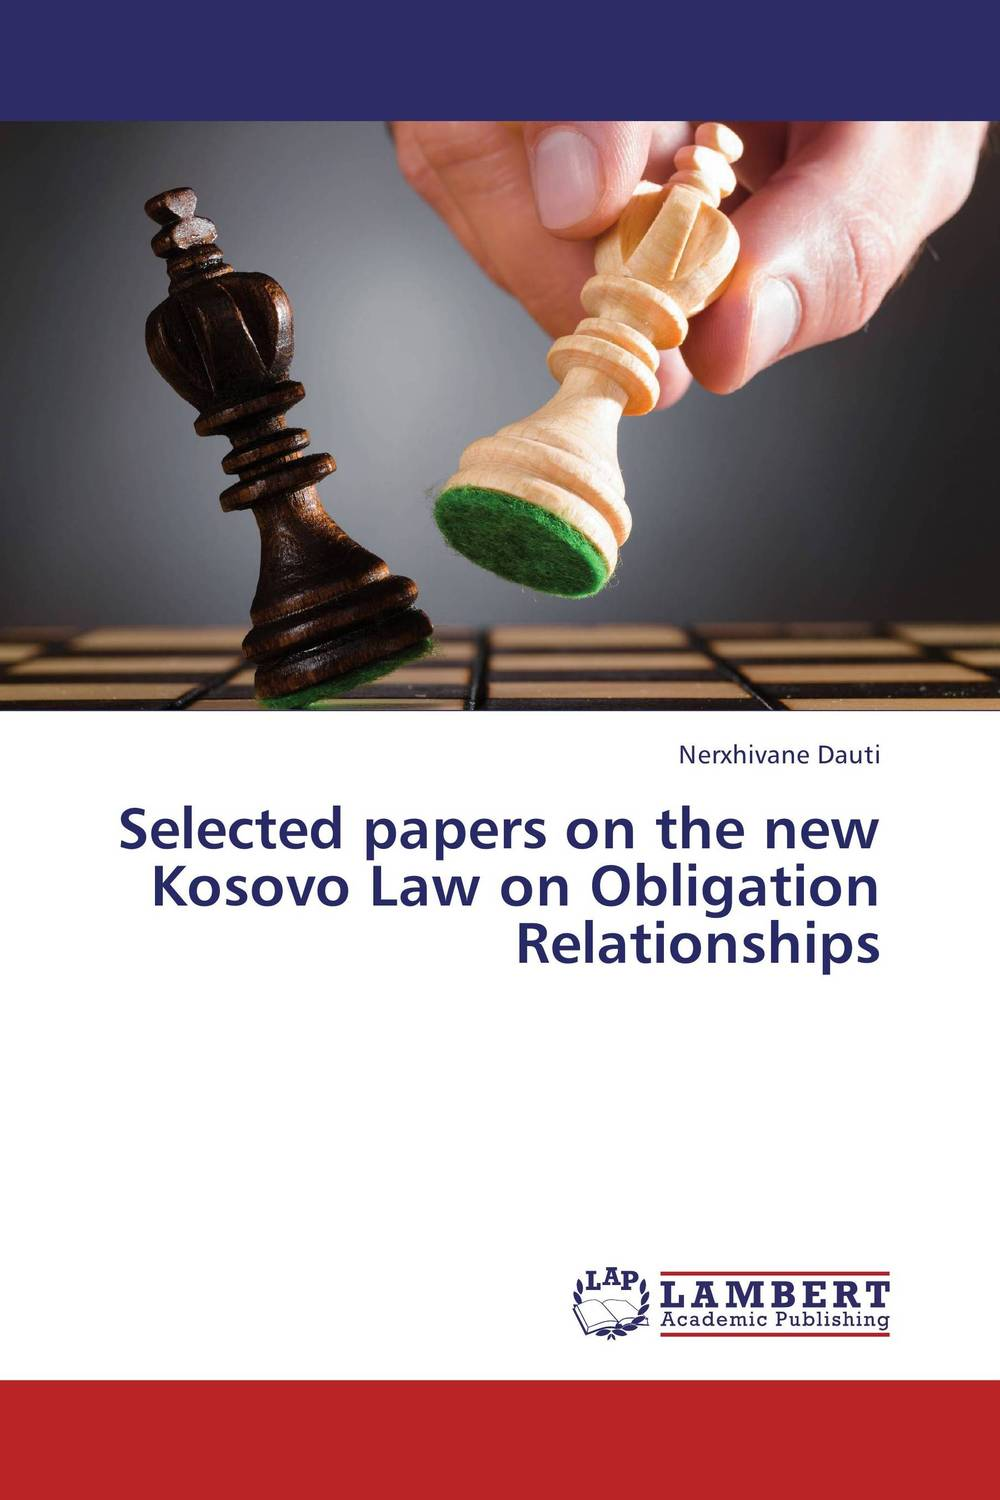 Selected papers on the new Kosovo Law on Obligation Relationships